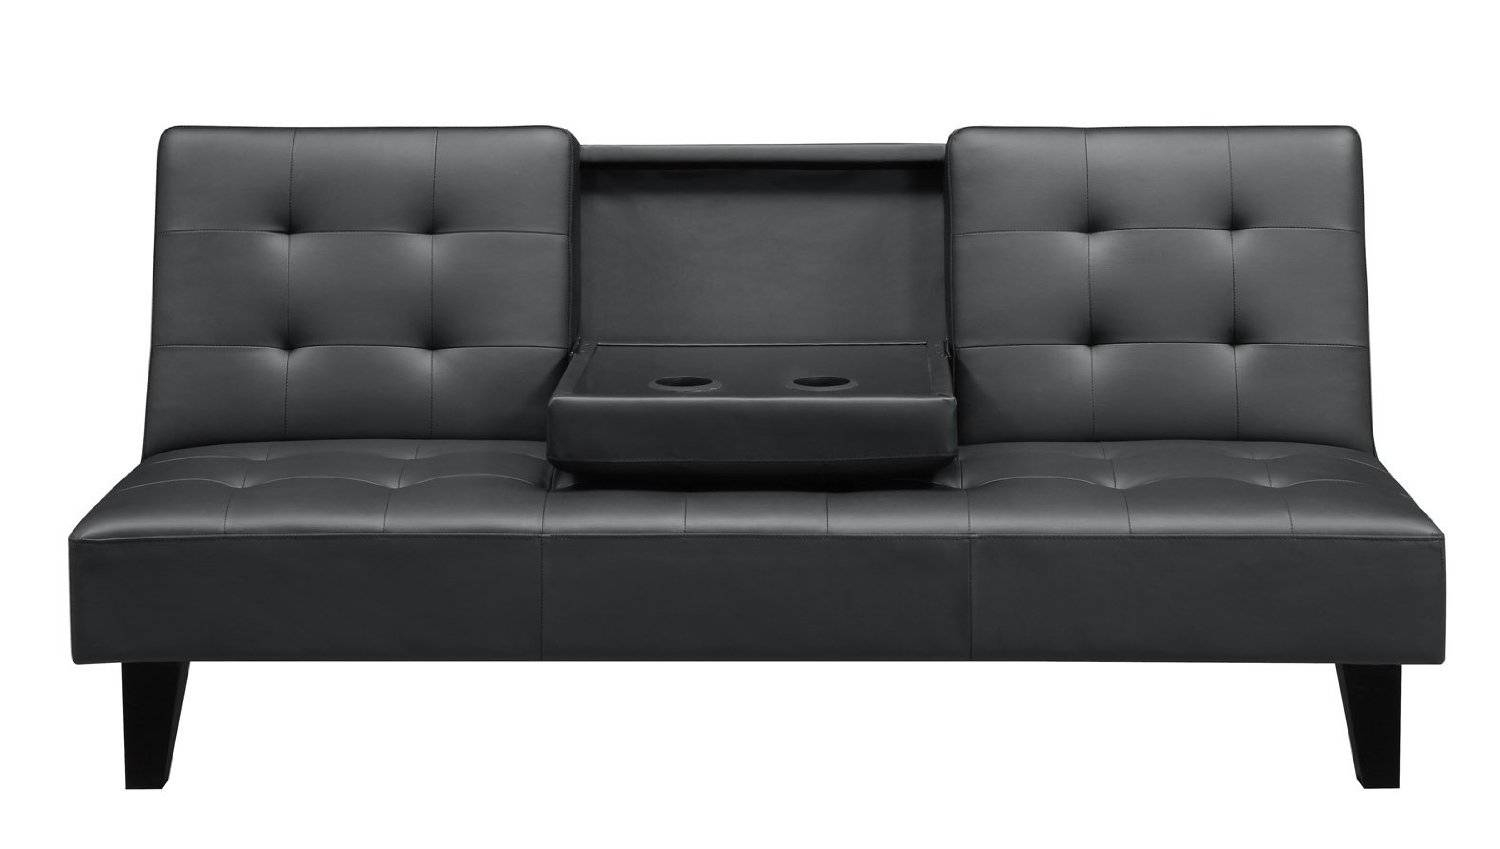 Living Room : Appealing Sharp Black Leather Sofa Bed Having Sturdy in Chintz Sofa Beds (Image 15 of 30)